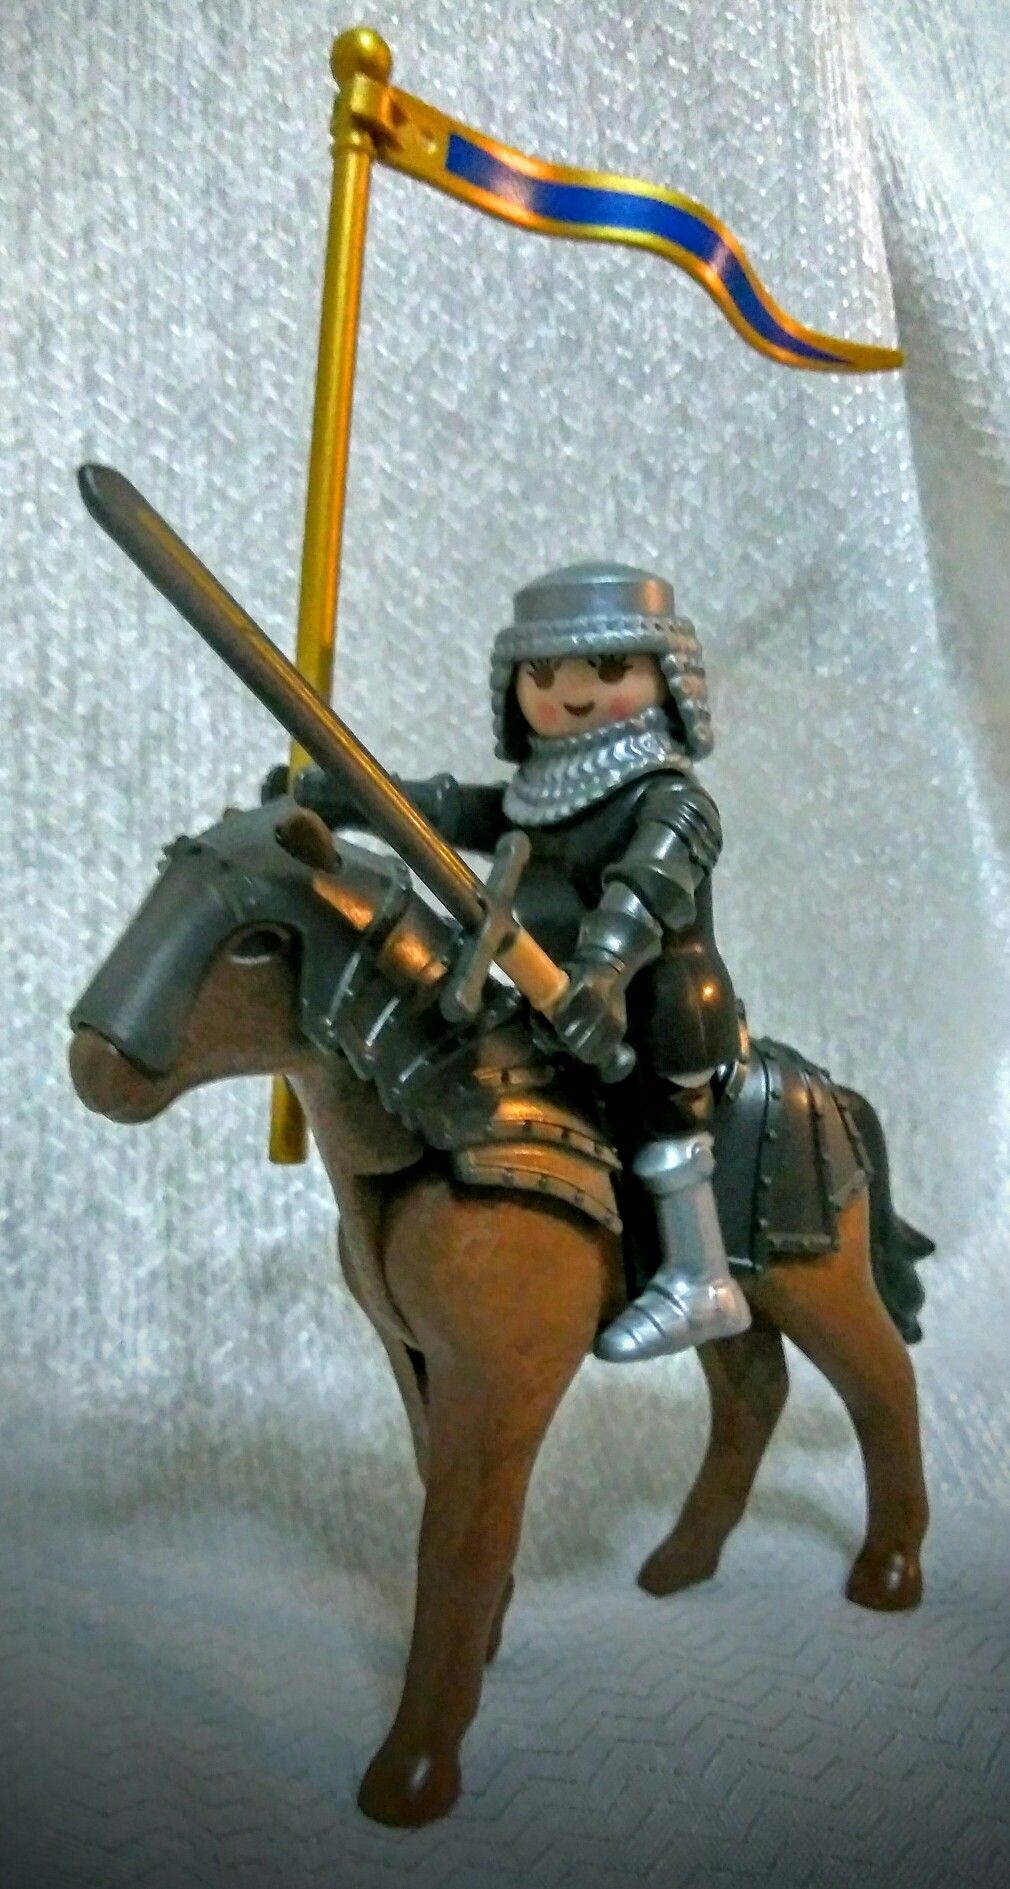 playmobil custom creation jeanne d arc by brother william my playmobil custom creation jeanne d arc by brother william